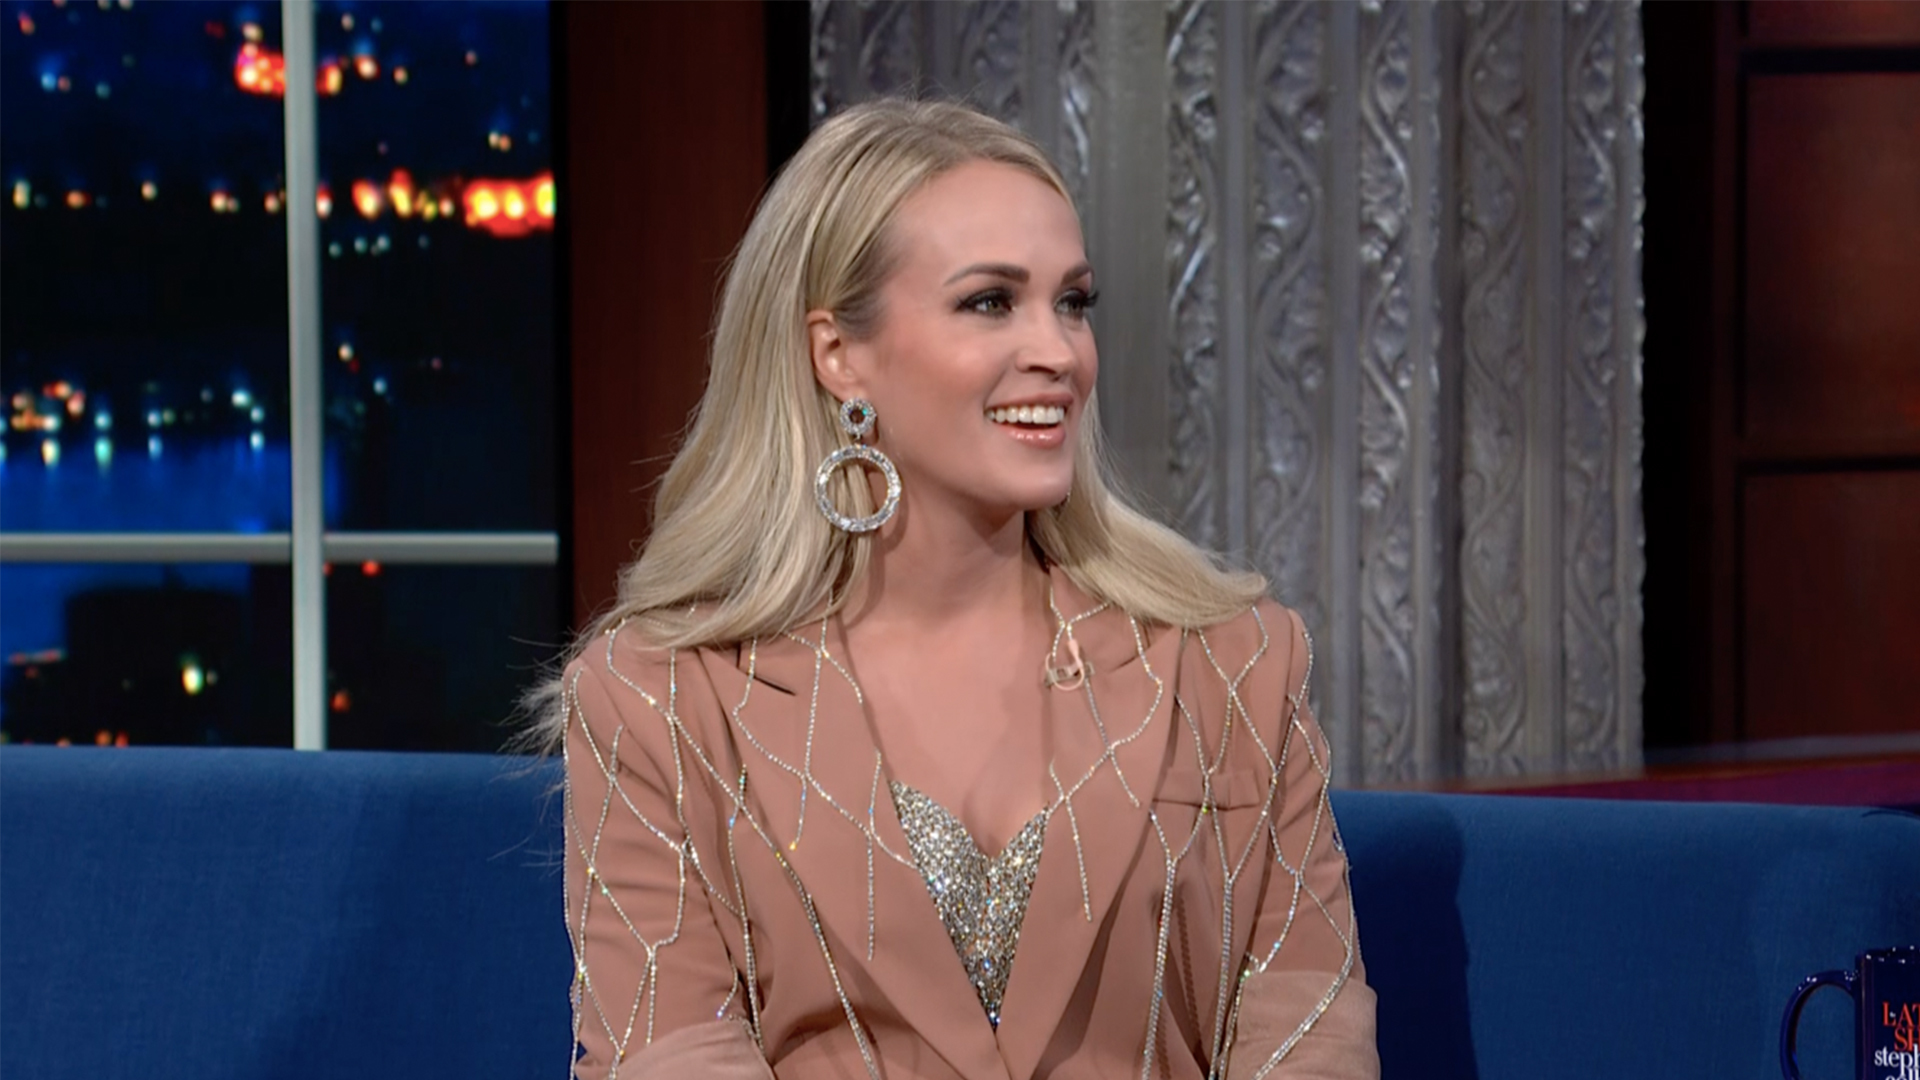 Carrie Underwood Had Never Been On A Plane Before Her Idol